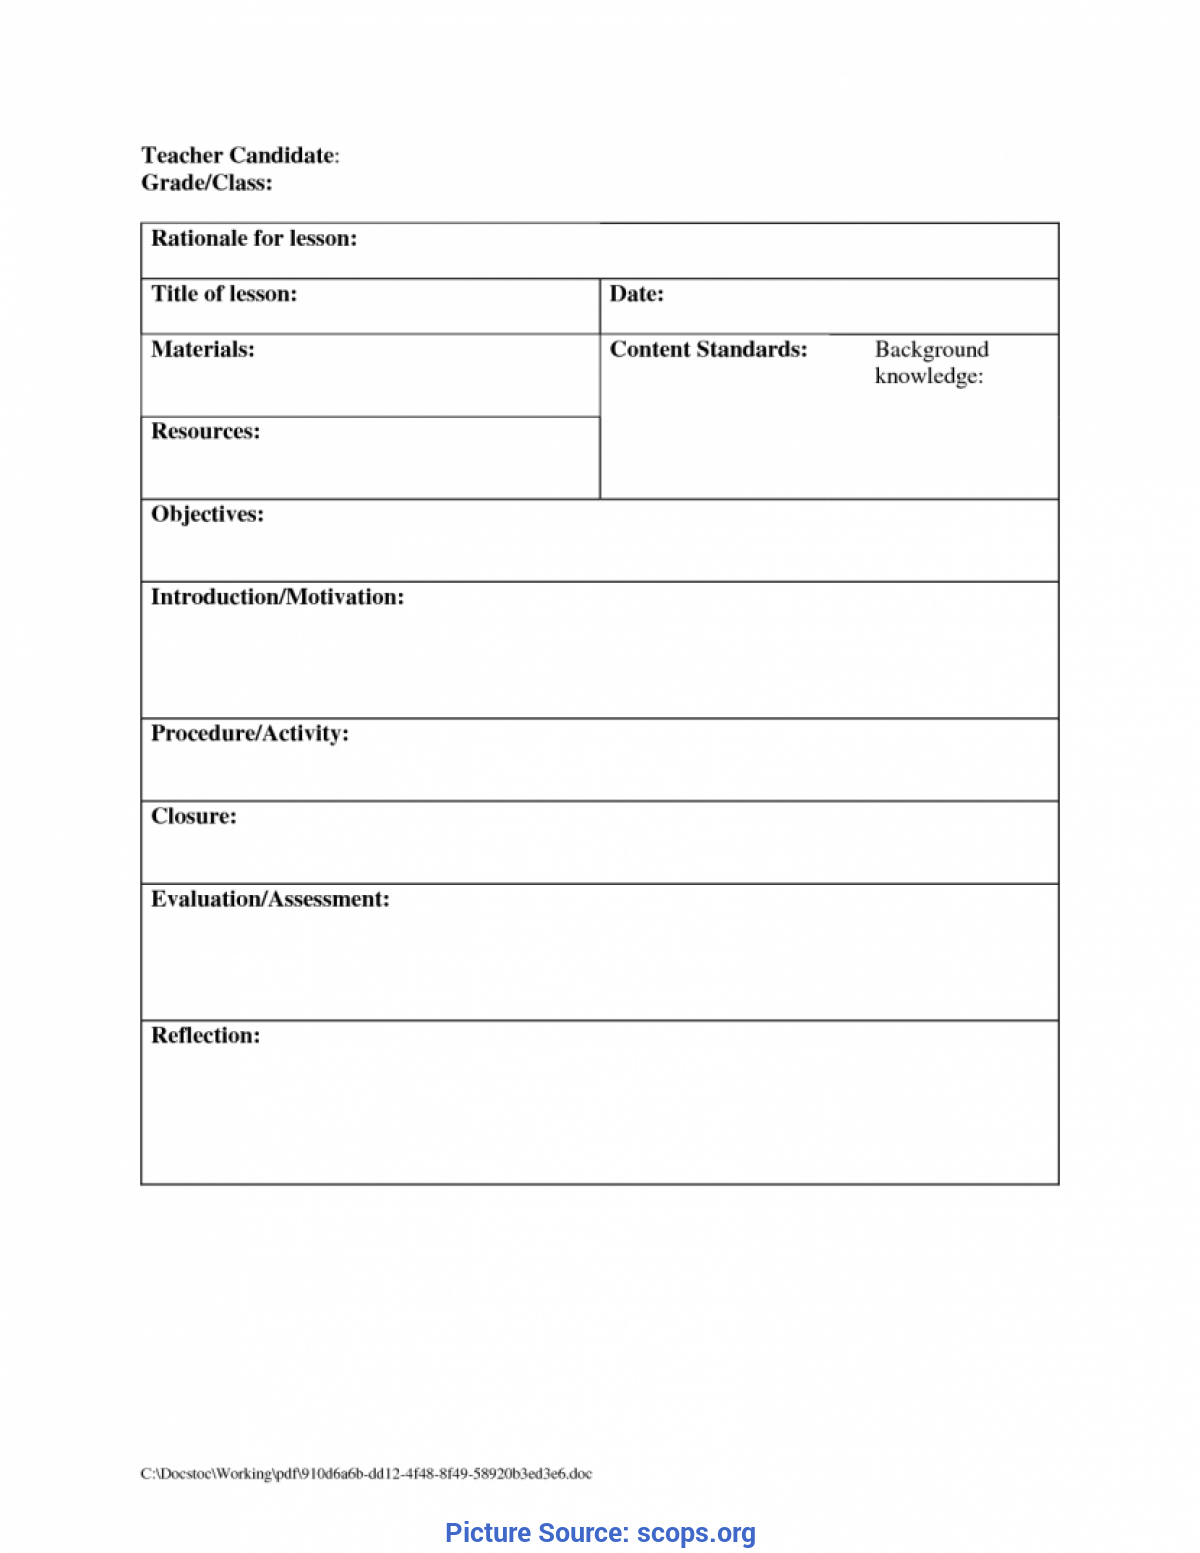 Useful Daily Lesson Plan Template Preschool Daily Lesson Plan Template Expinmedialab Co Children'S Newslette